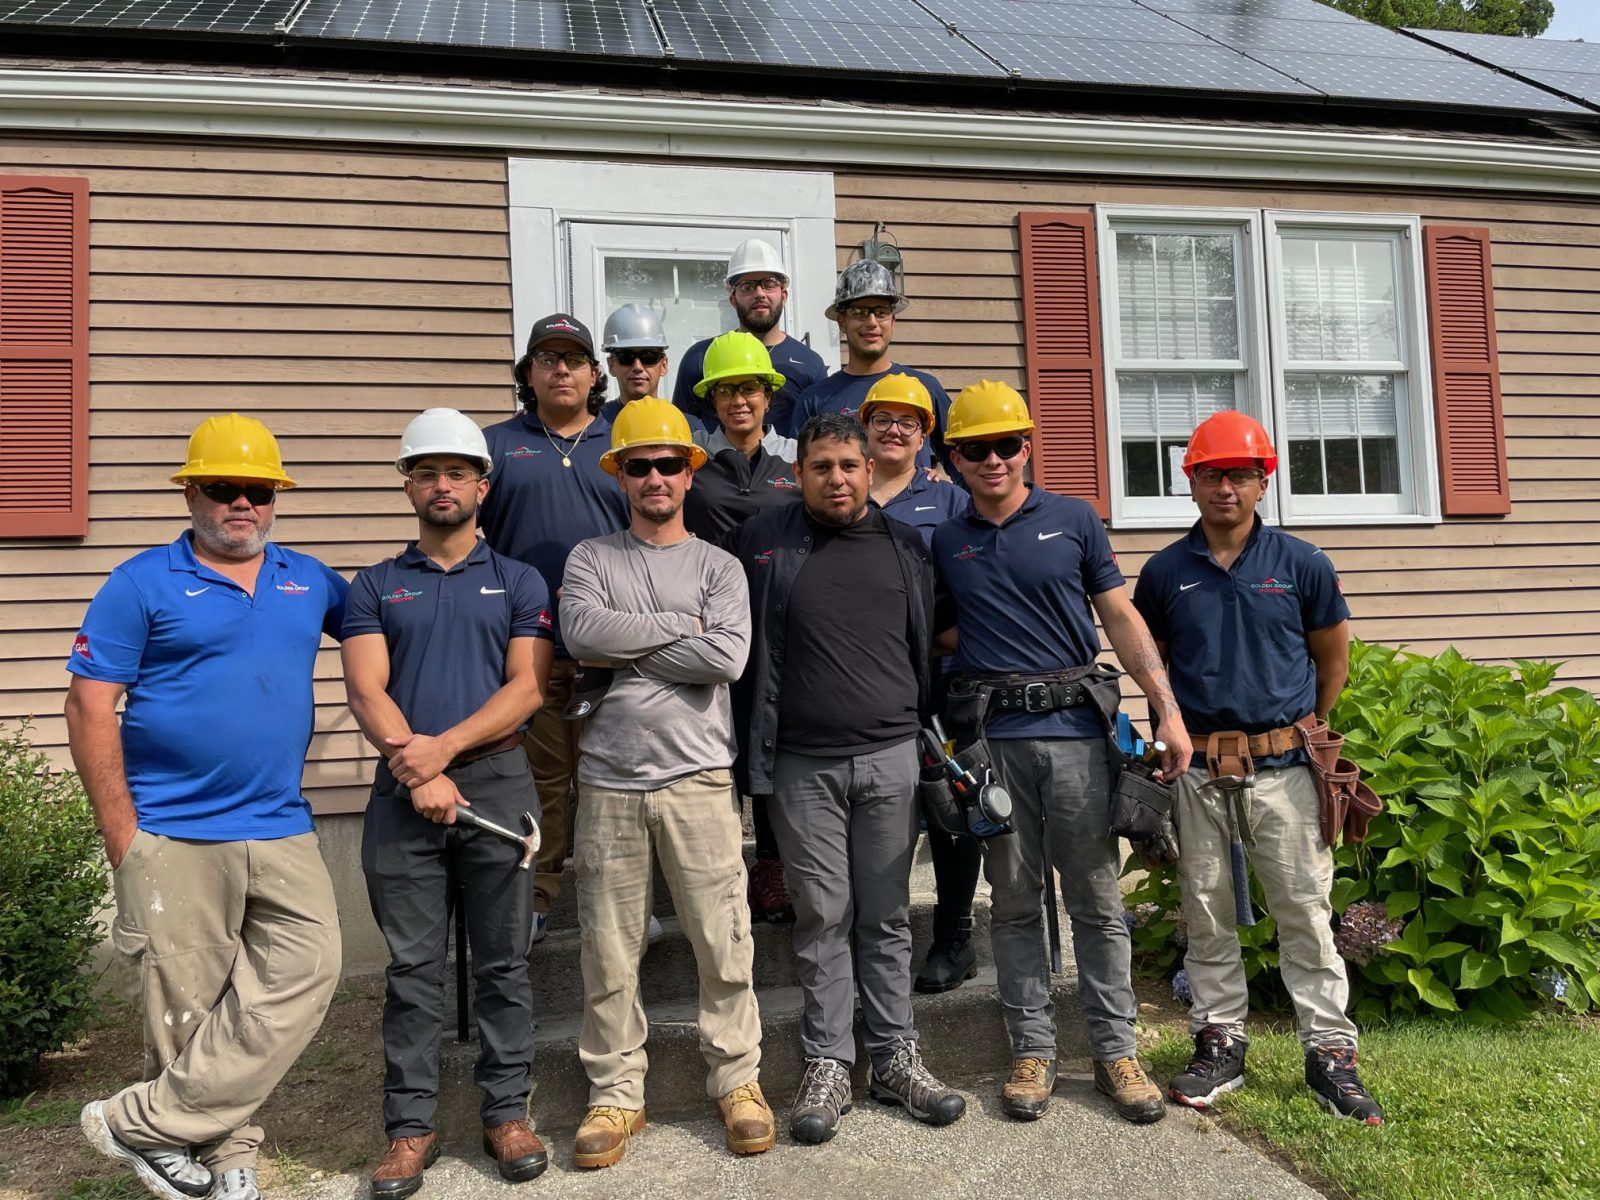 Siding Replacement Andover, MA